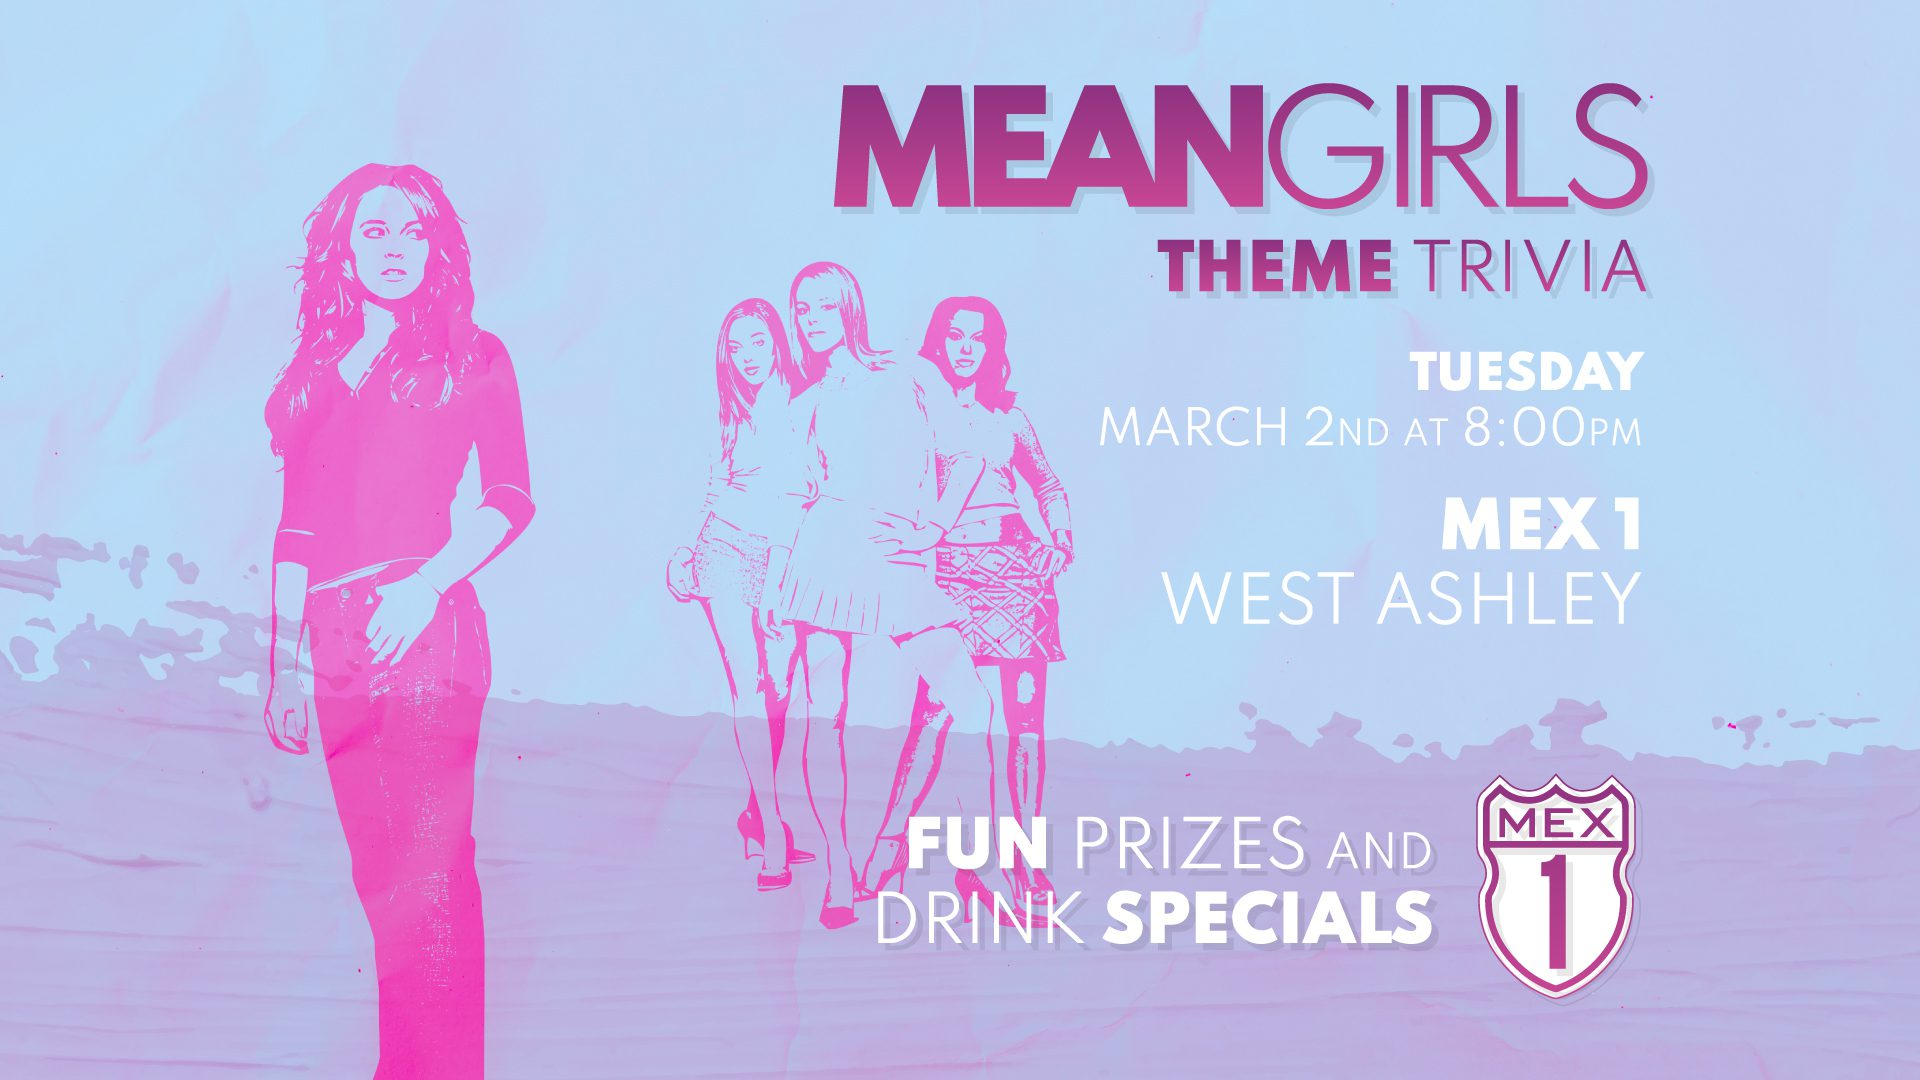 Mean Girls Theme Trivia at Mex 1 West Ashley on Tuesday, March 2nd at 8pm